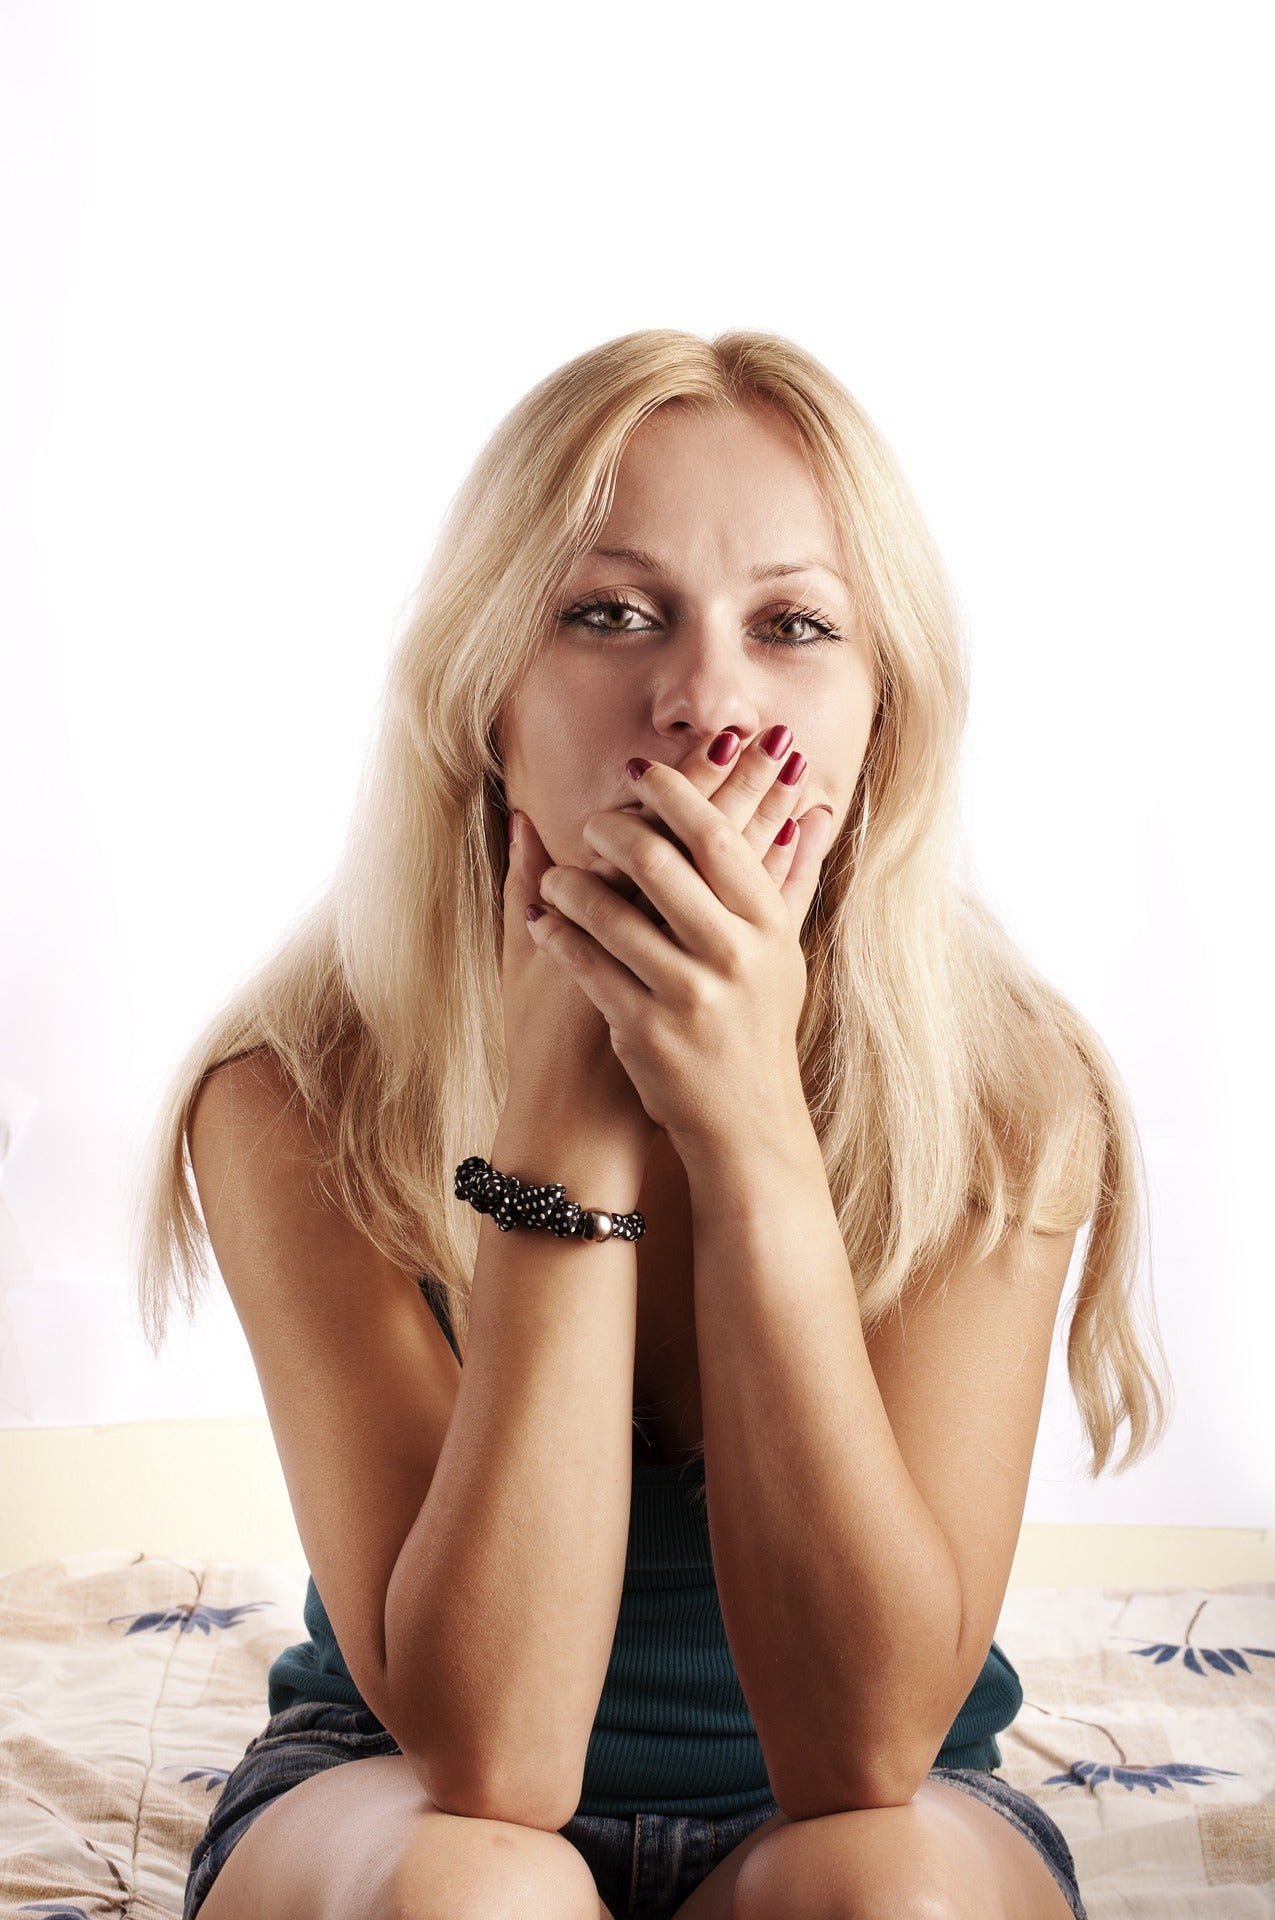 Blonde woman with her hands over her mouth, for AutoBrush